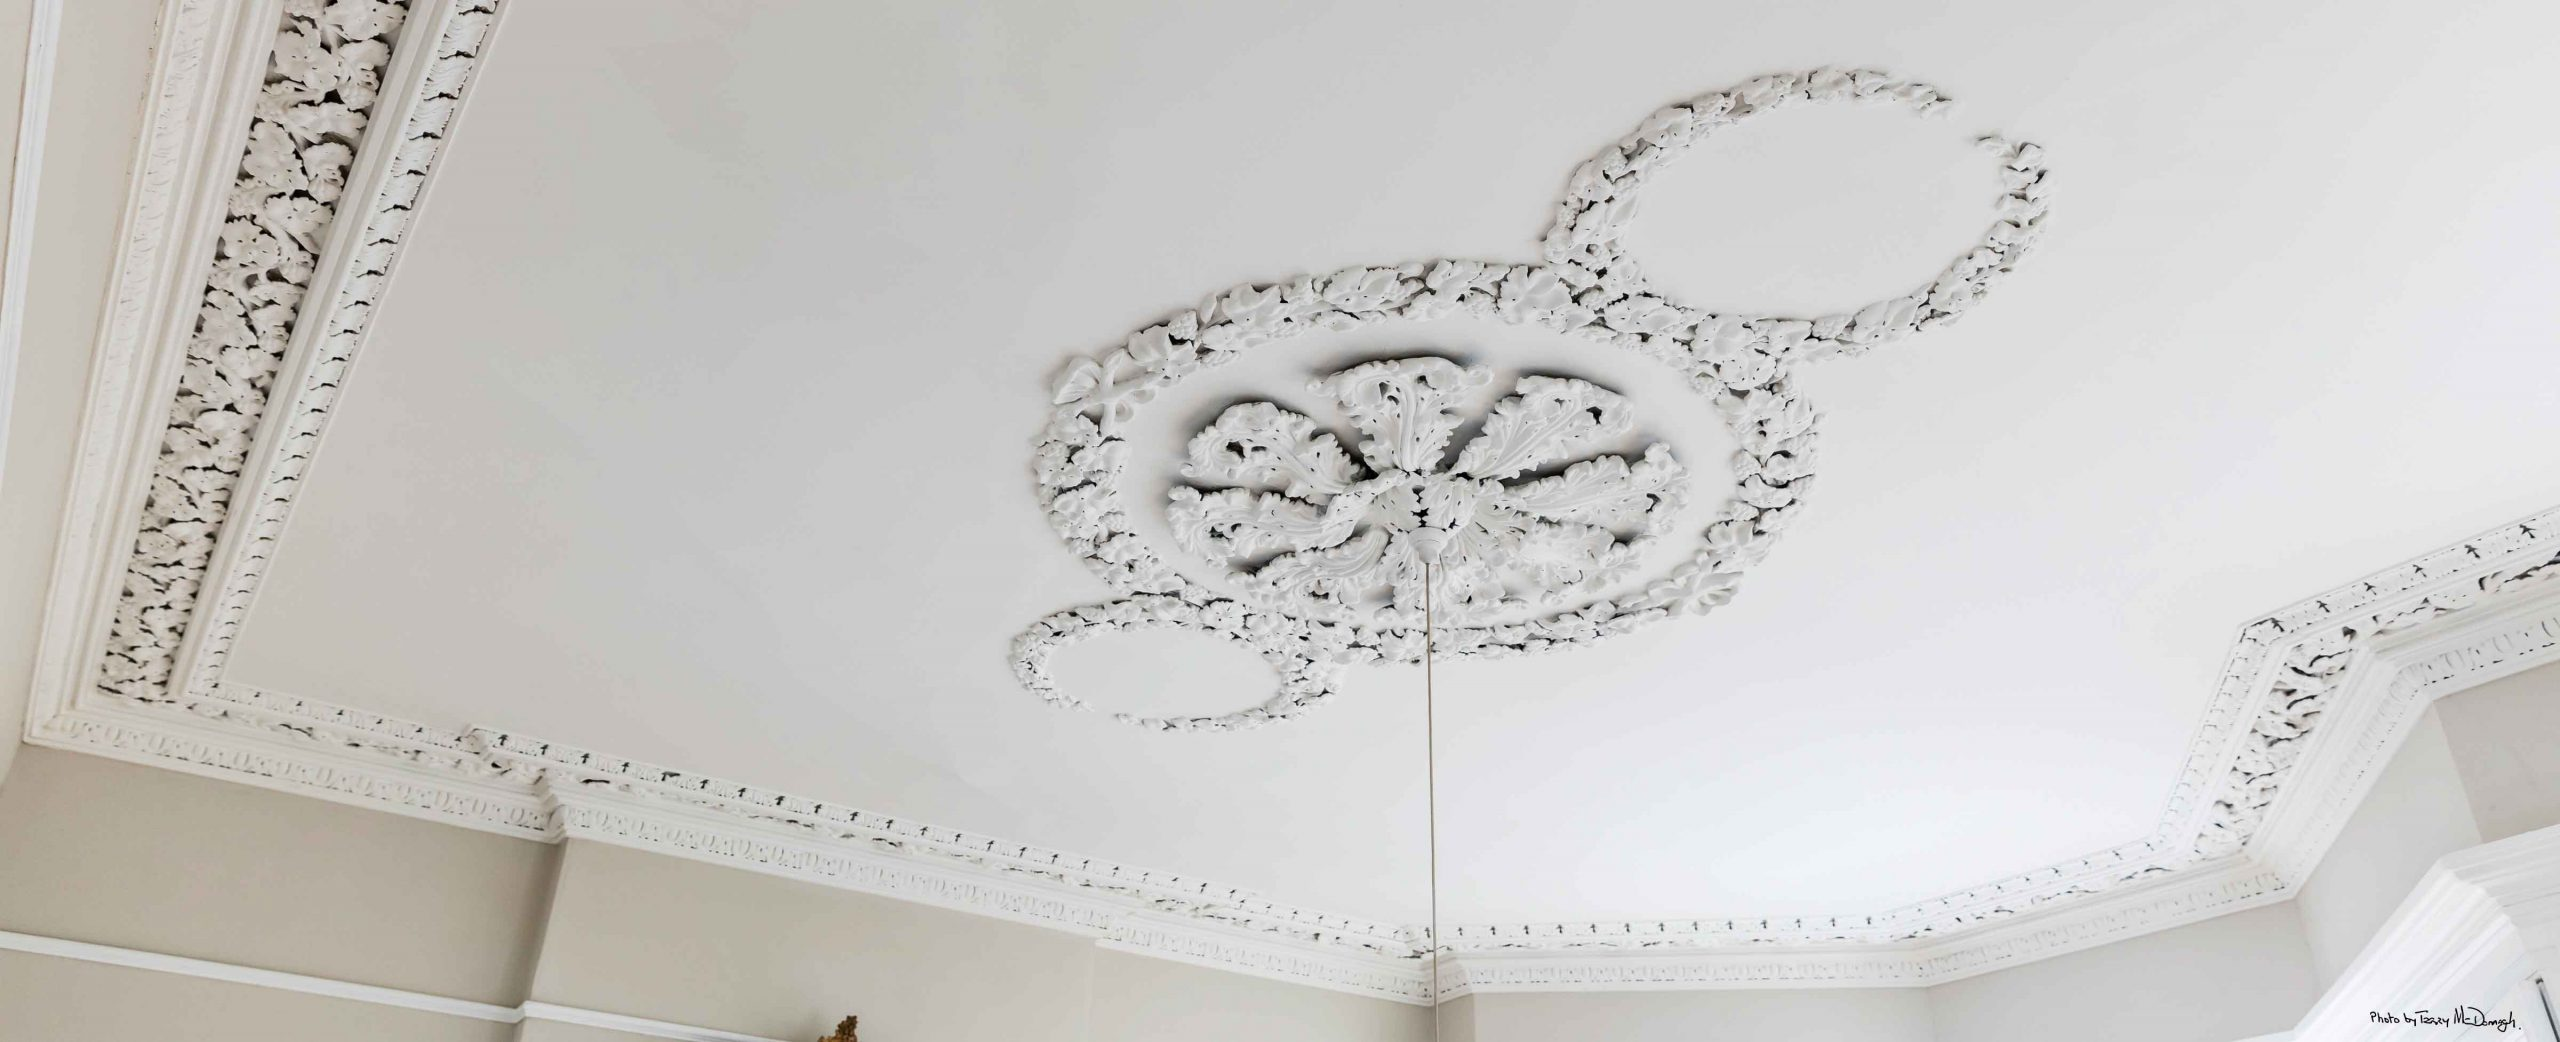 Restored ceiling and cornicing by Impressions Painting and Decorating